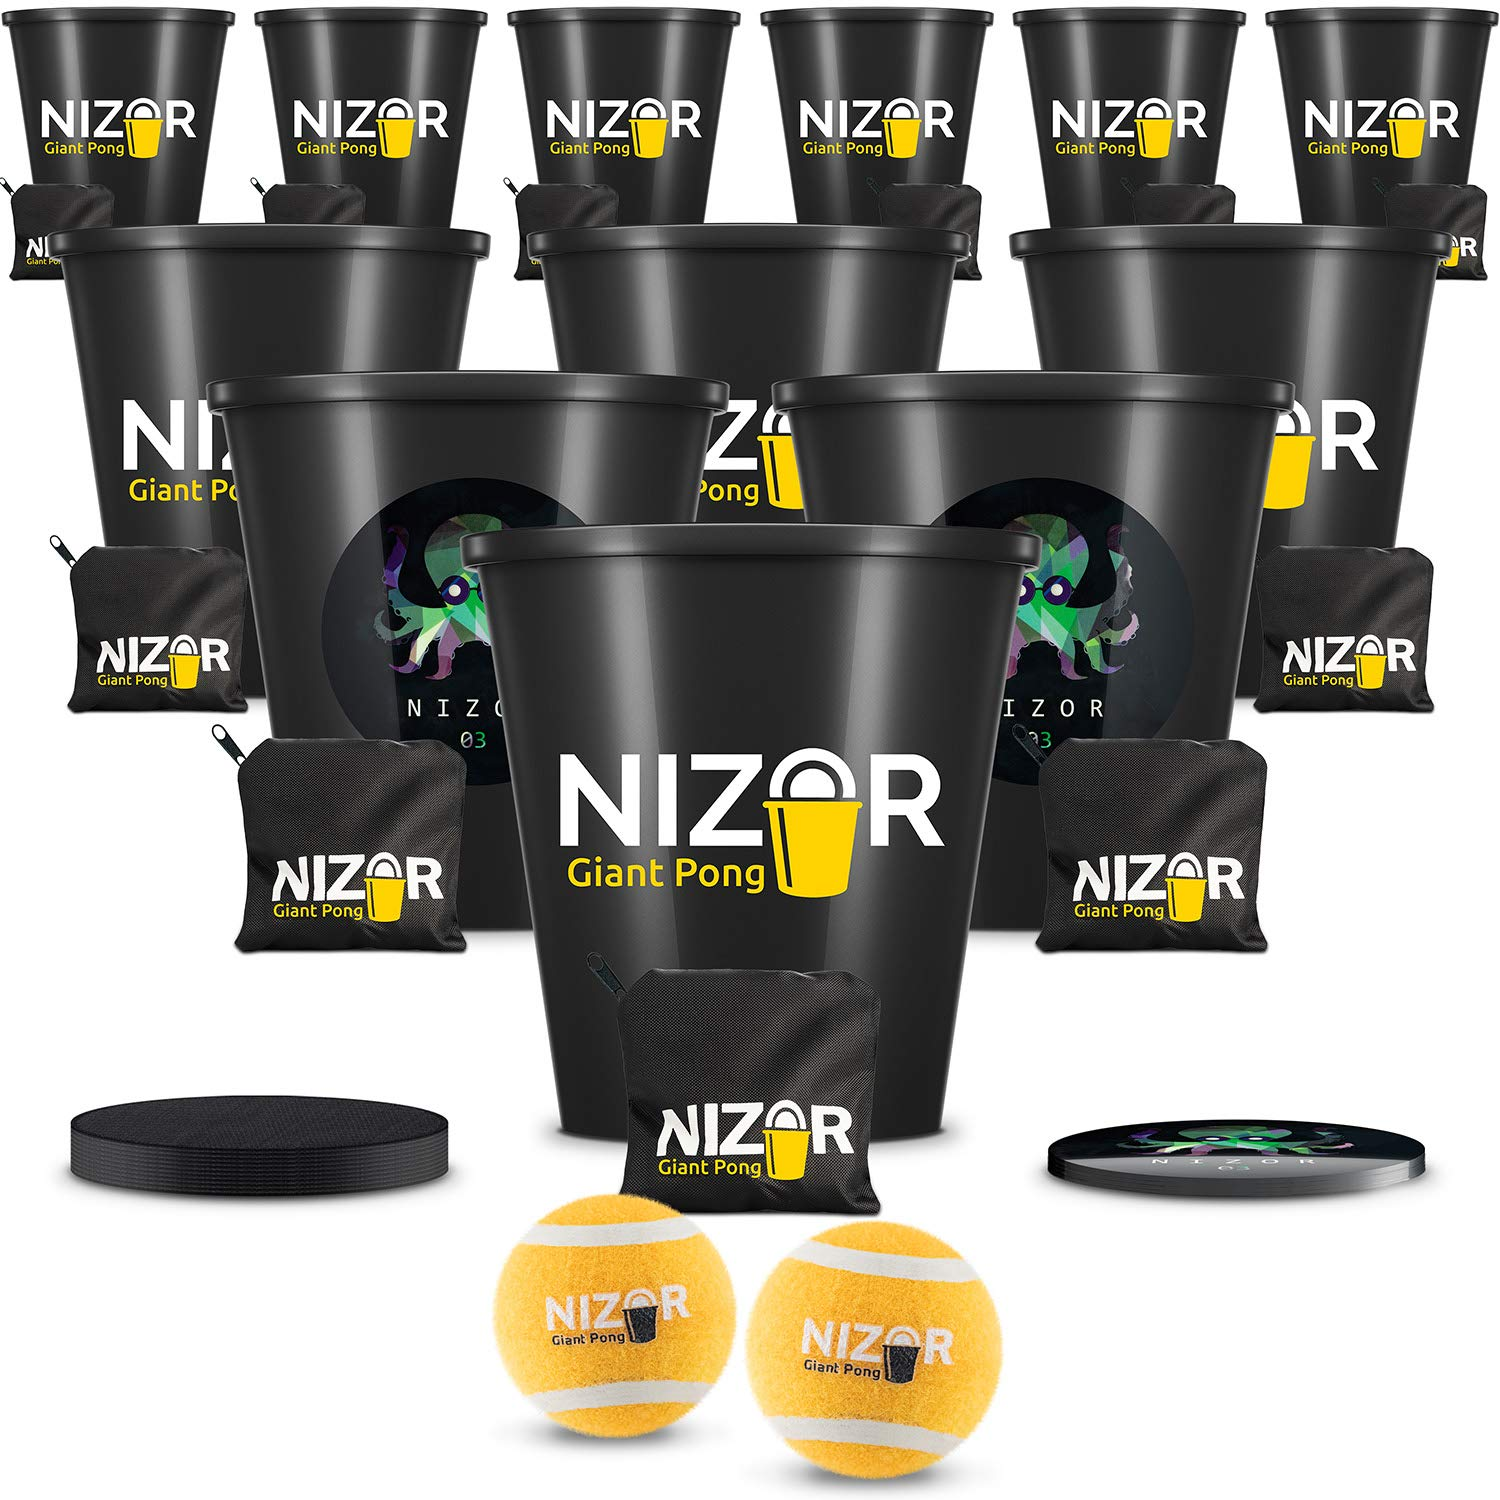 Giant Pong Bucket Games & Balls Set   Lawn Jumbo Size Family   Premium Beach, Pool, Garden, Golf, Yard, Tailgate, Party   Indoor & Outdoor   Fluorescent Sticker   Best Gift Toy for Family by Nizor Pong